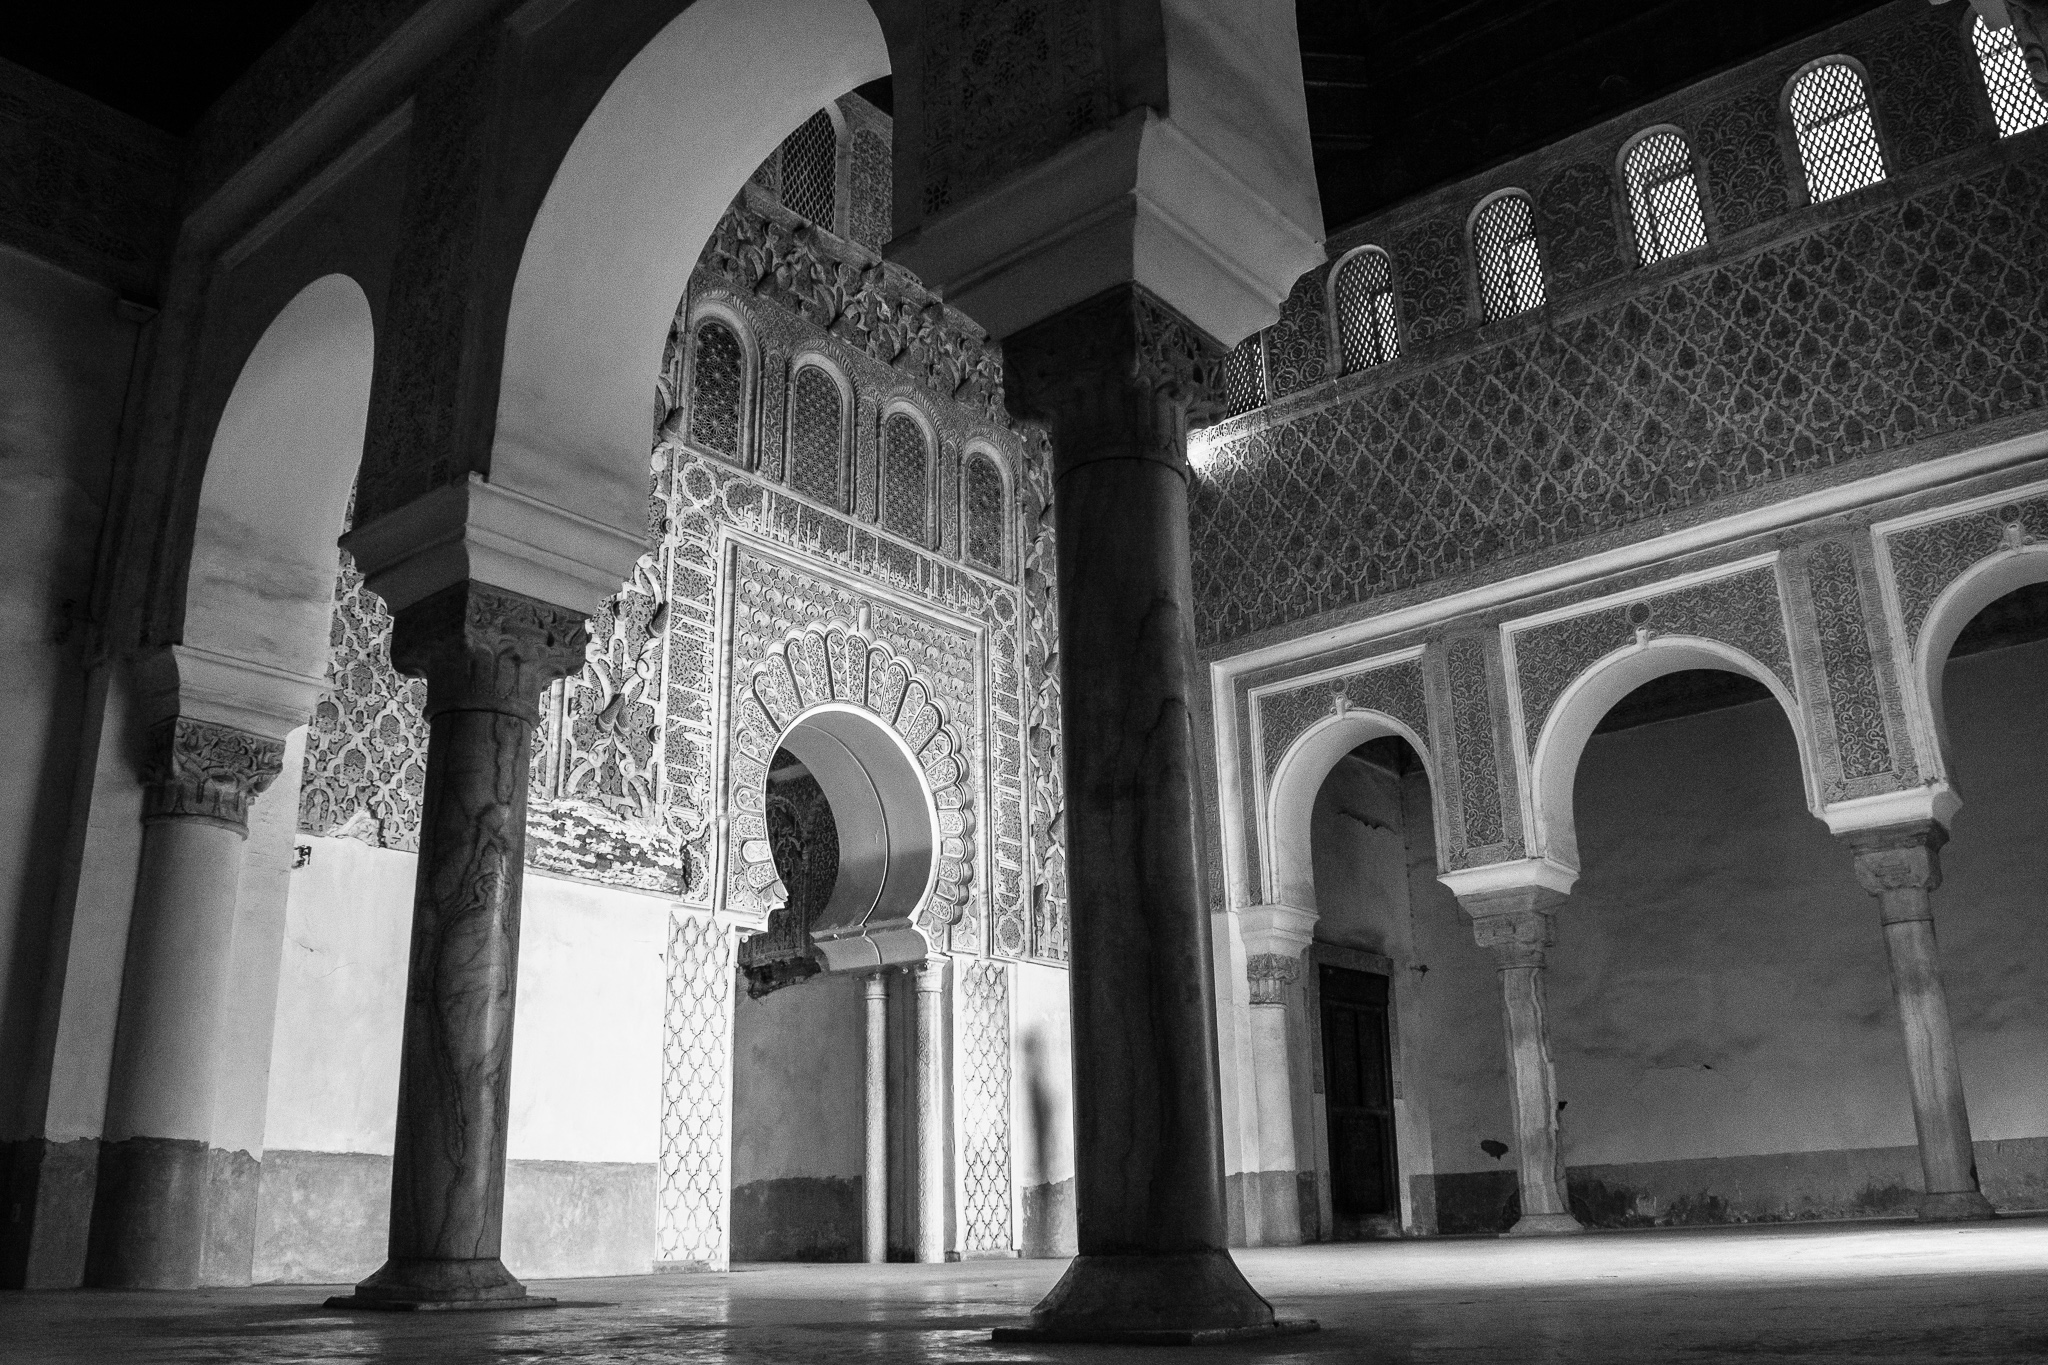 [Madrasa; Muslim school of higher education. Specialized in religious studies.]<br> The Medersa Ben Youssef, also called Madrasa Ben Youssef, founded in the XIV century, is the most important madrasa of Marrakesh. <br>Characterized by its arabe-andalusian architecture, and by its numerous inscriptions in stucco and tiles, its 130 cells had space for up to 900 students.